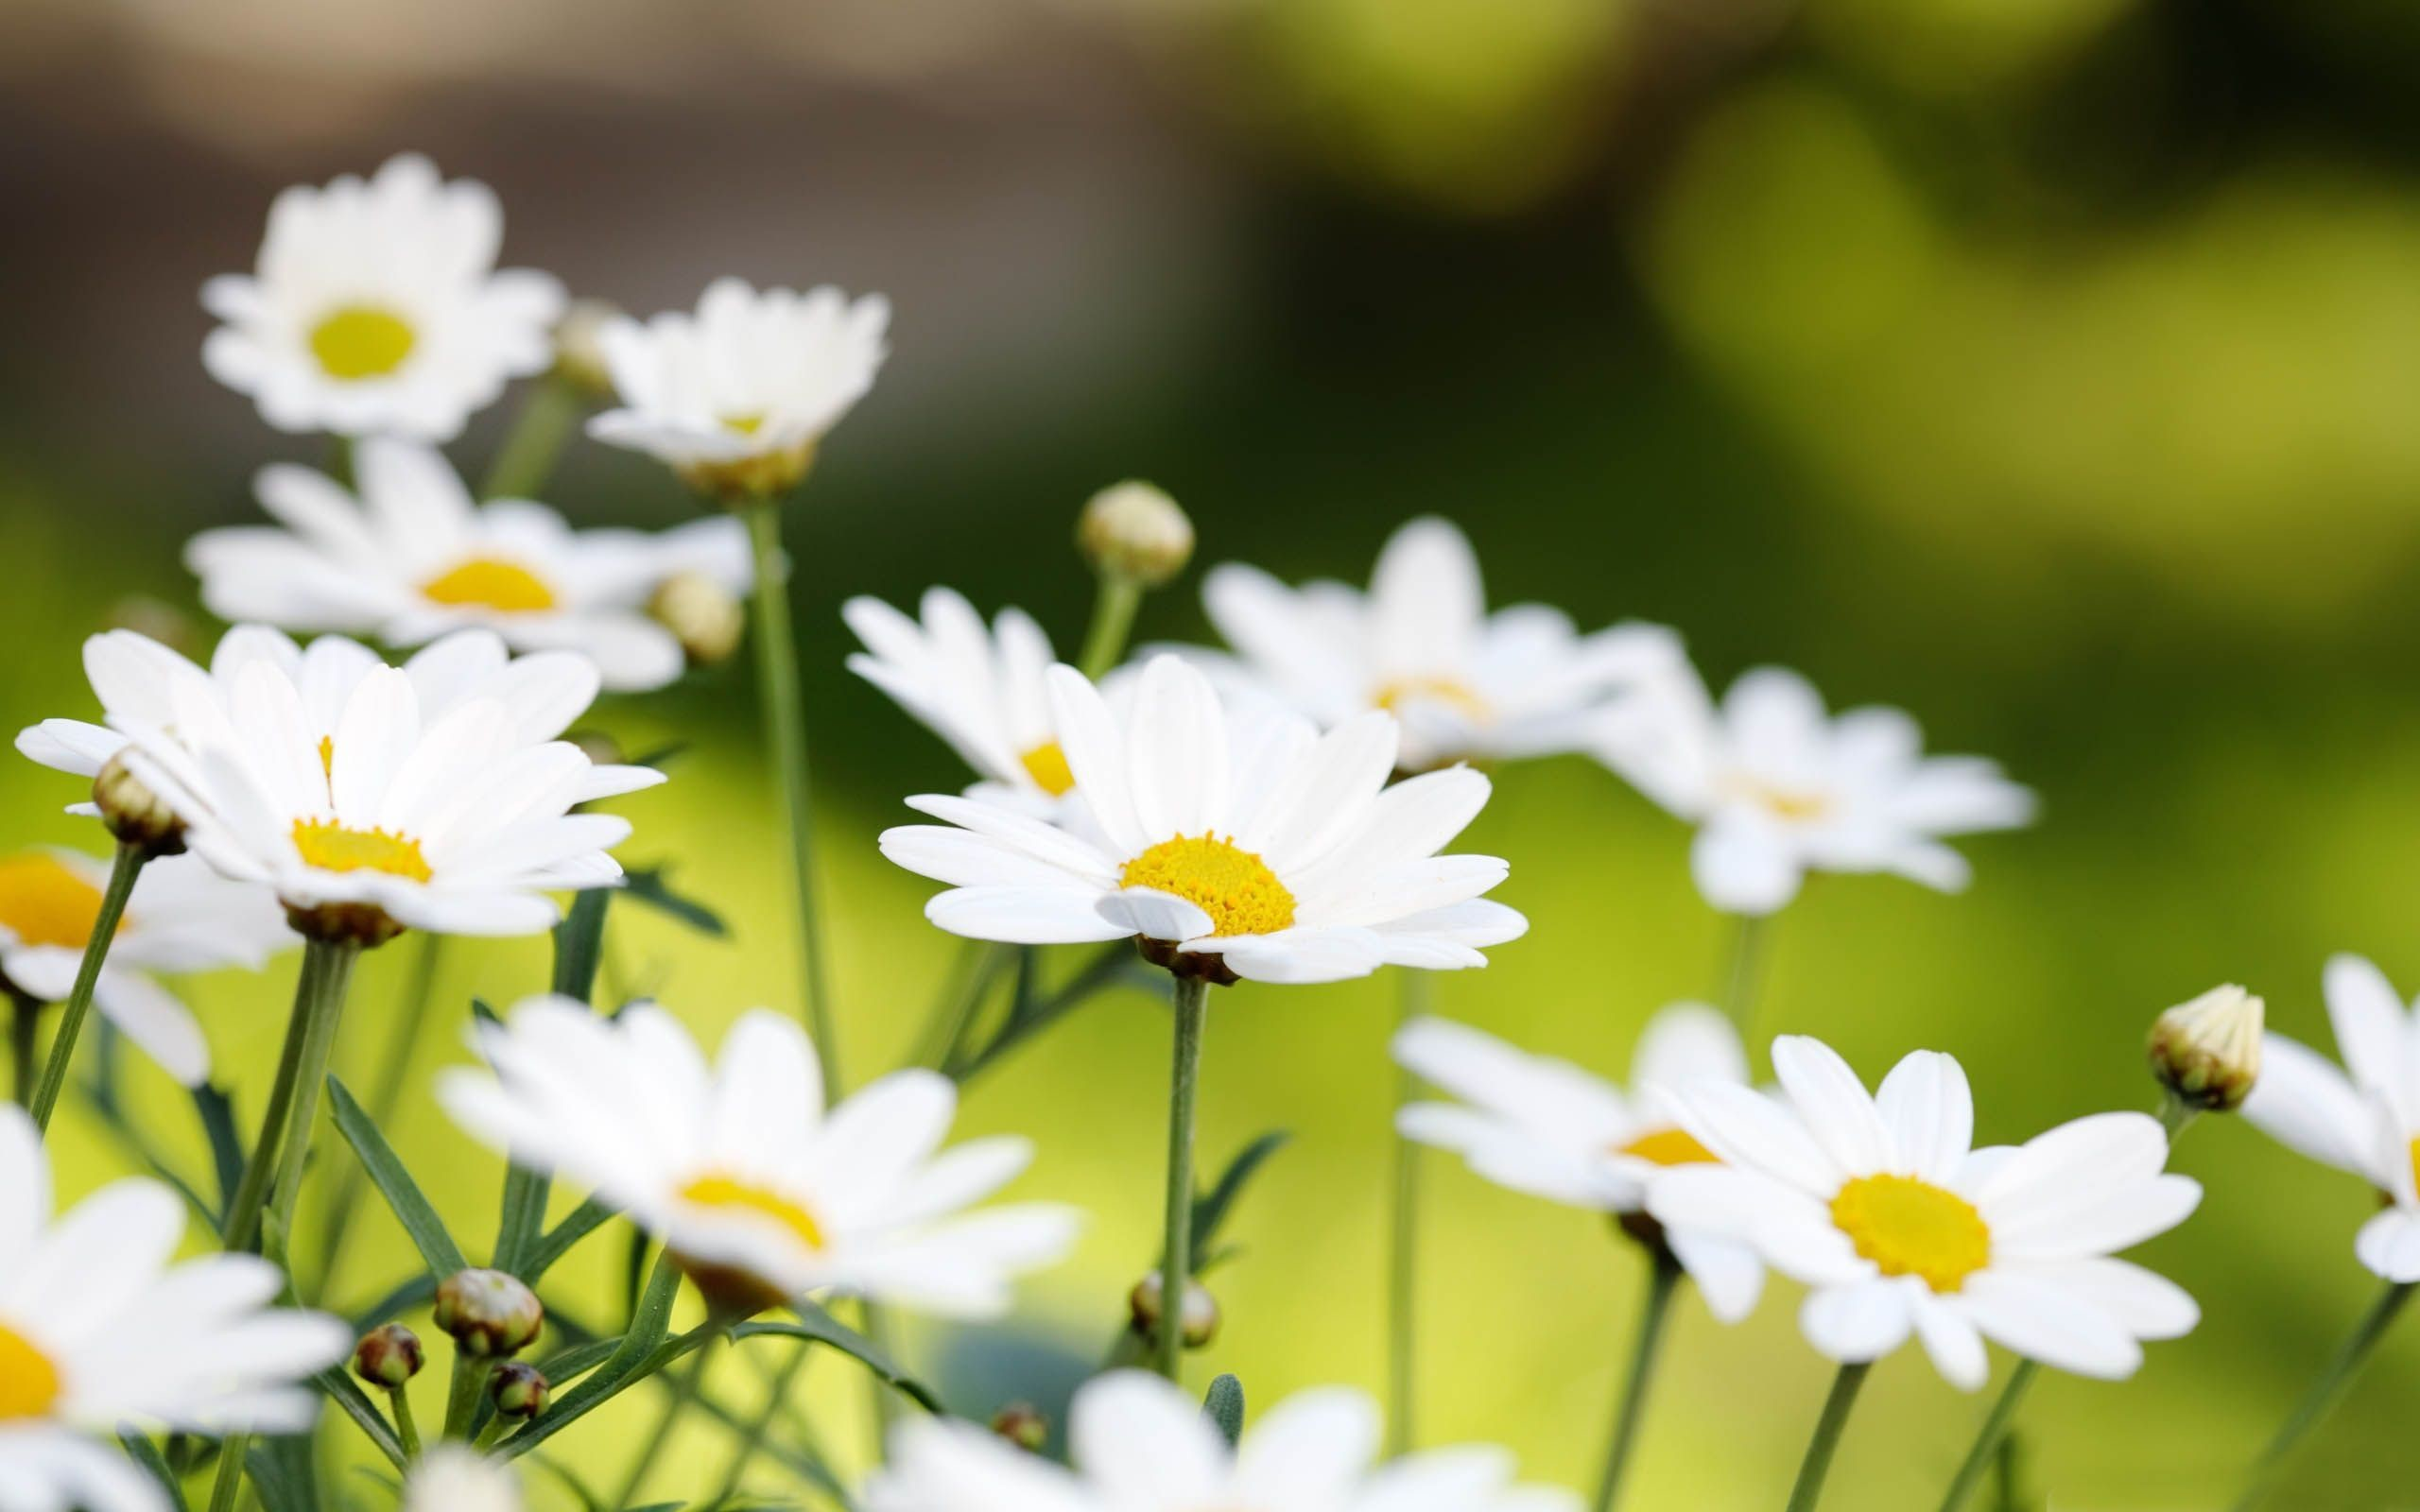 Res: 2560x1600, Summer Flowers Wallpapers - HD Wallpapers Inn